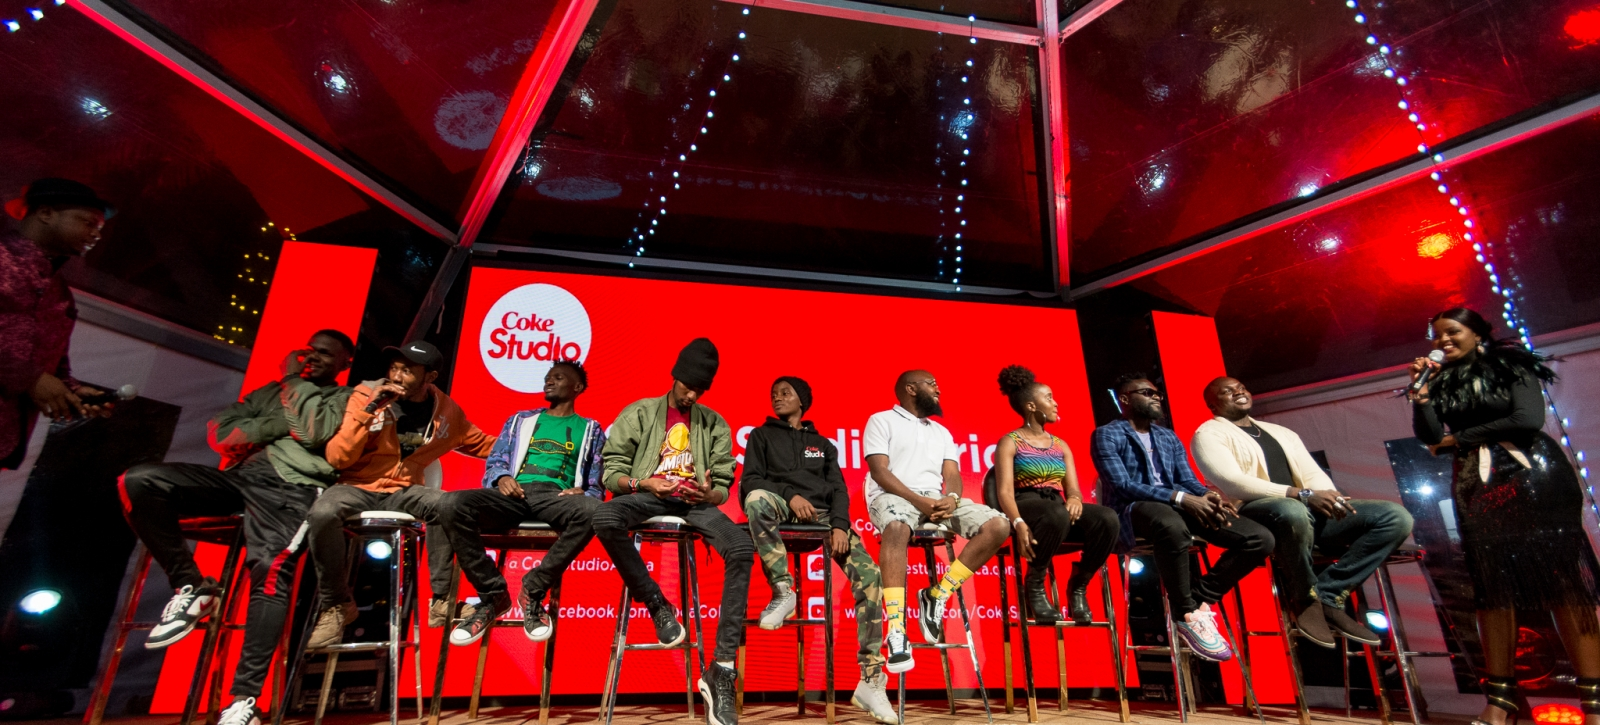 Coke Studio 2019 Launch at Sankara (10/2/2019)